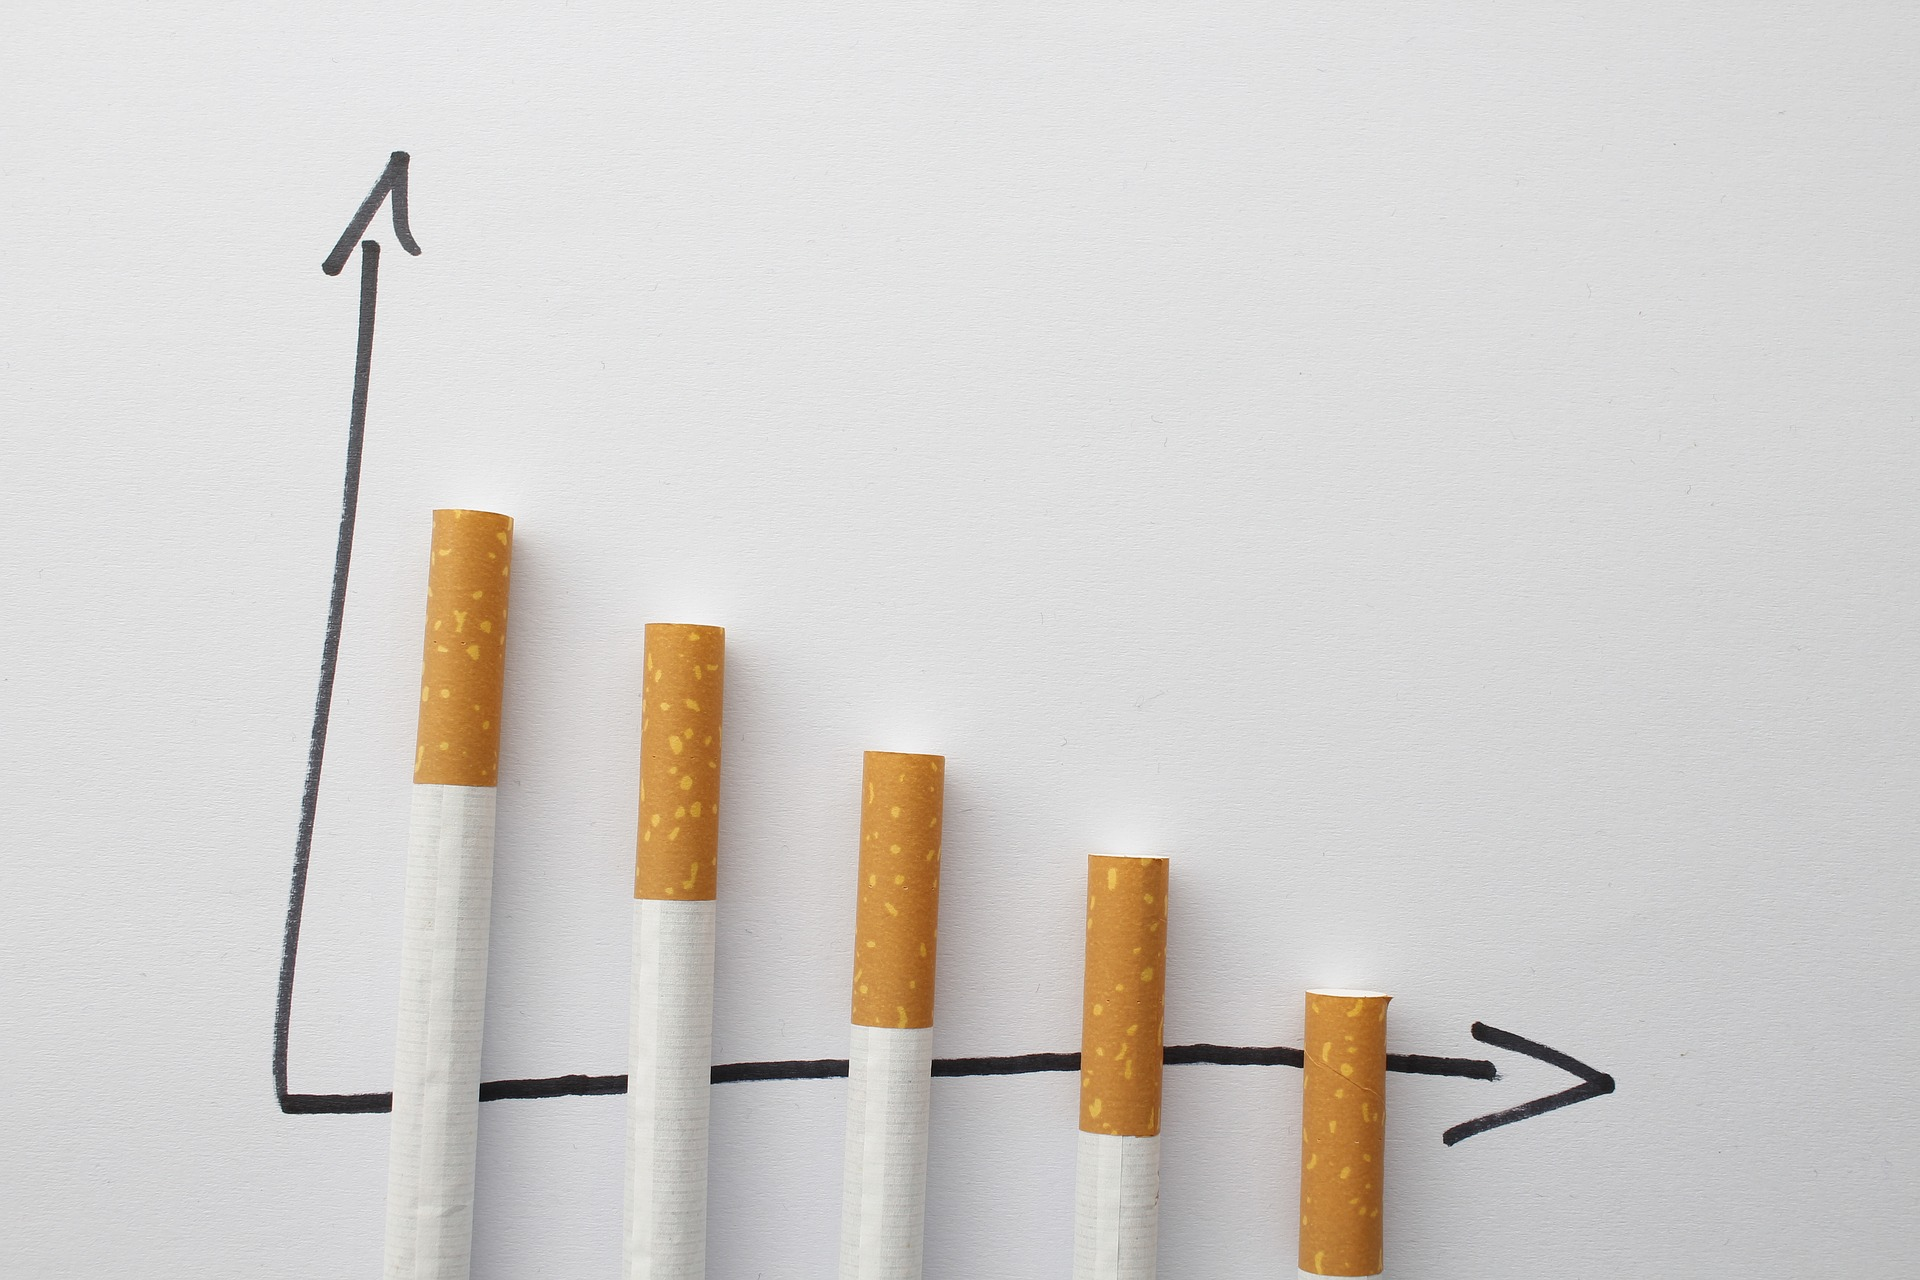 Cigarettes arranged on line graph to indicate process of quitting smoking